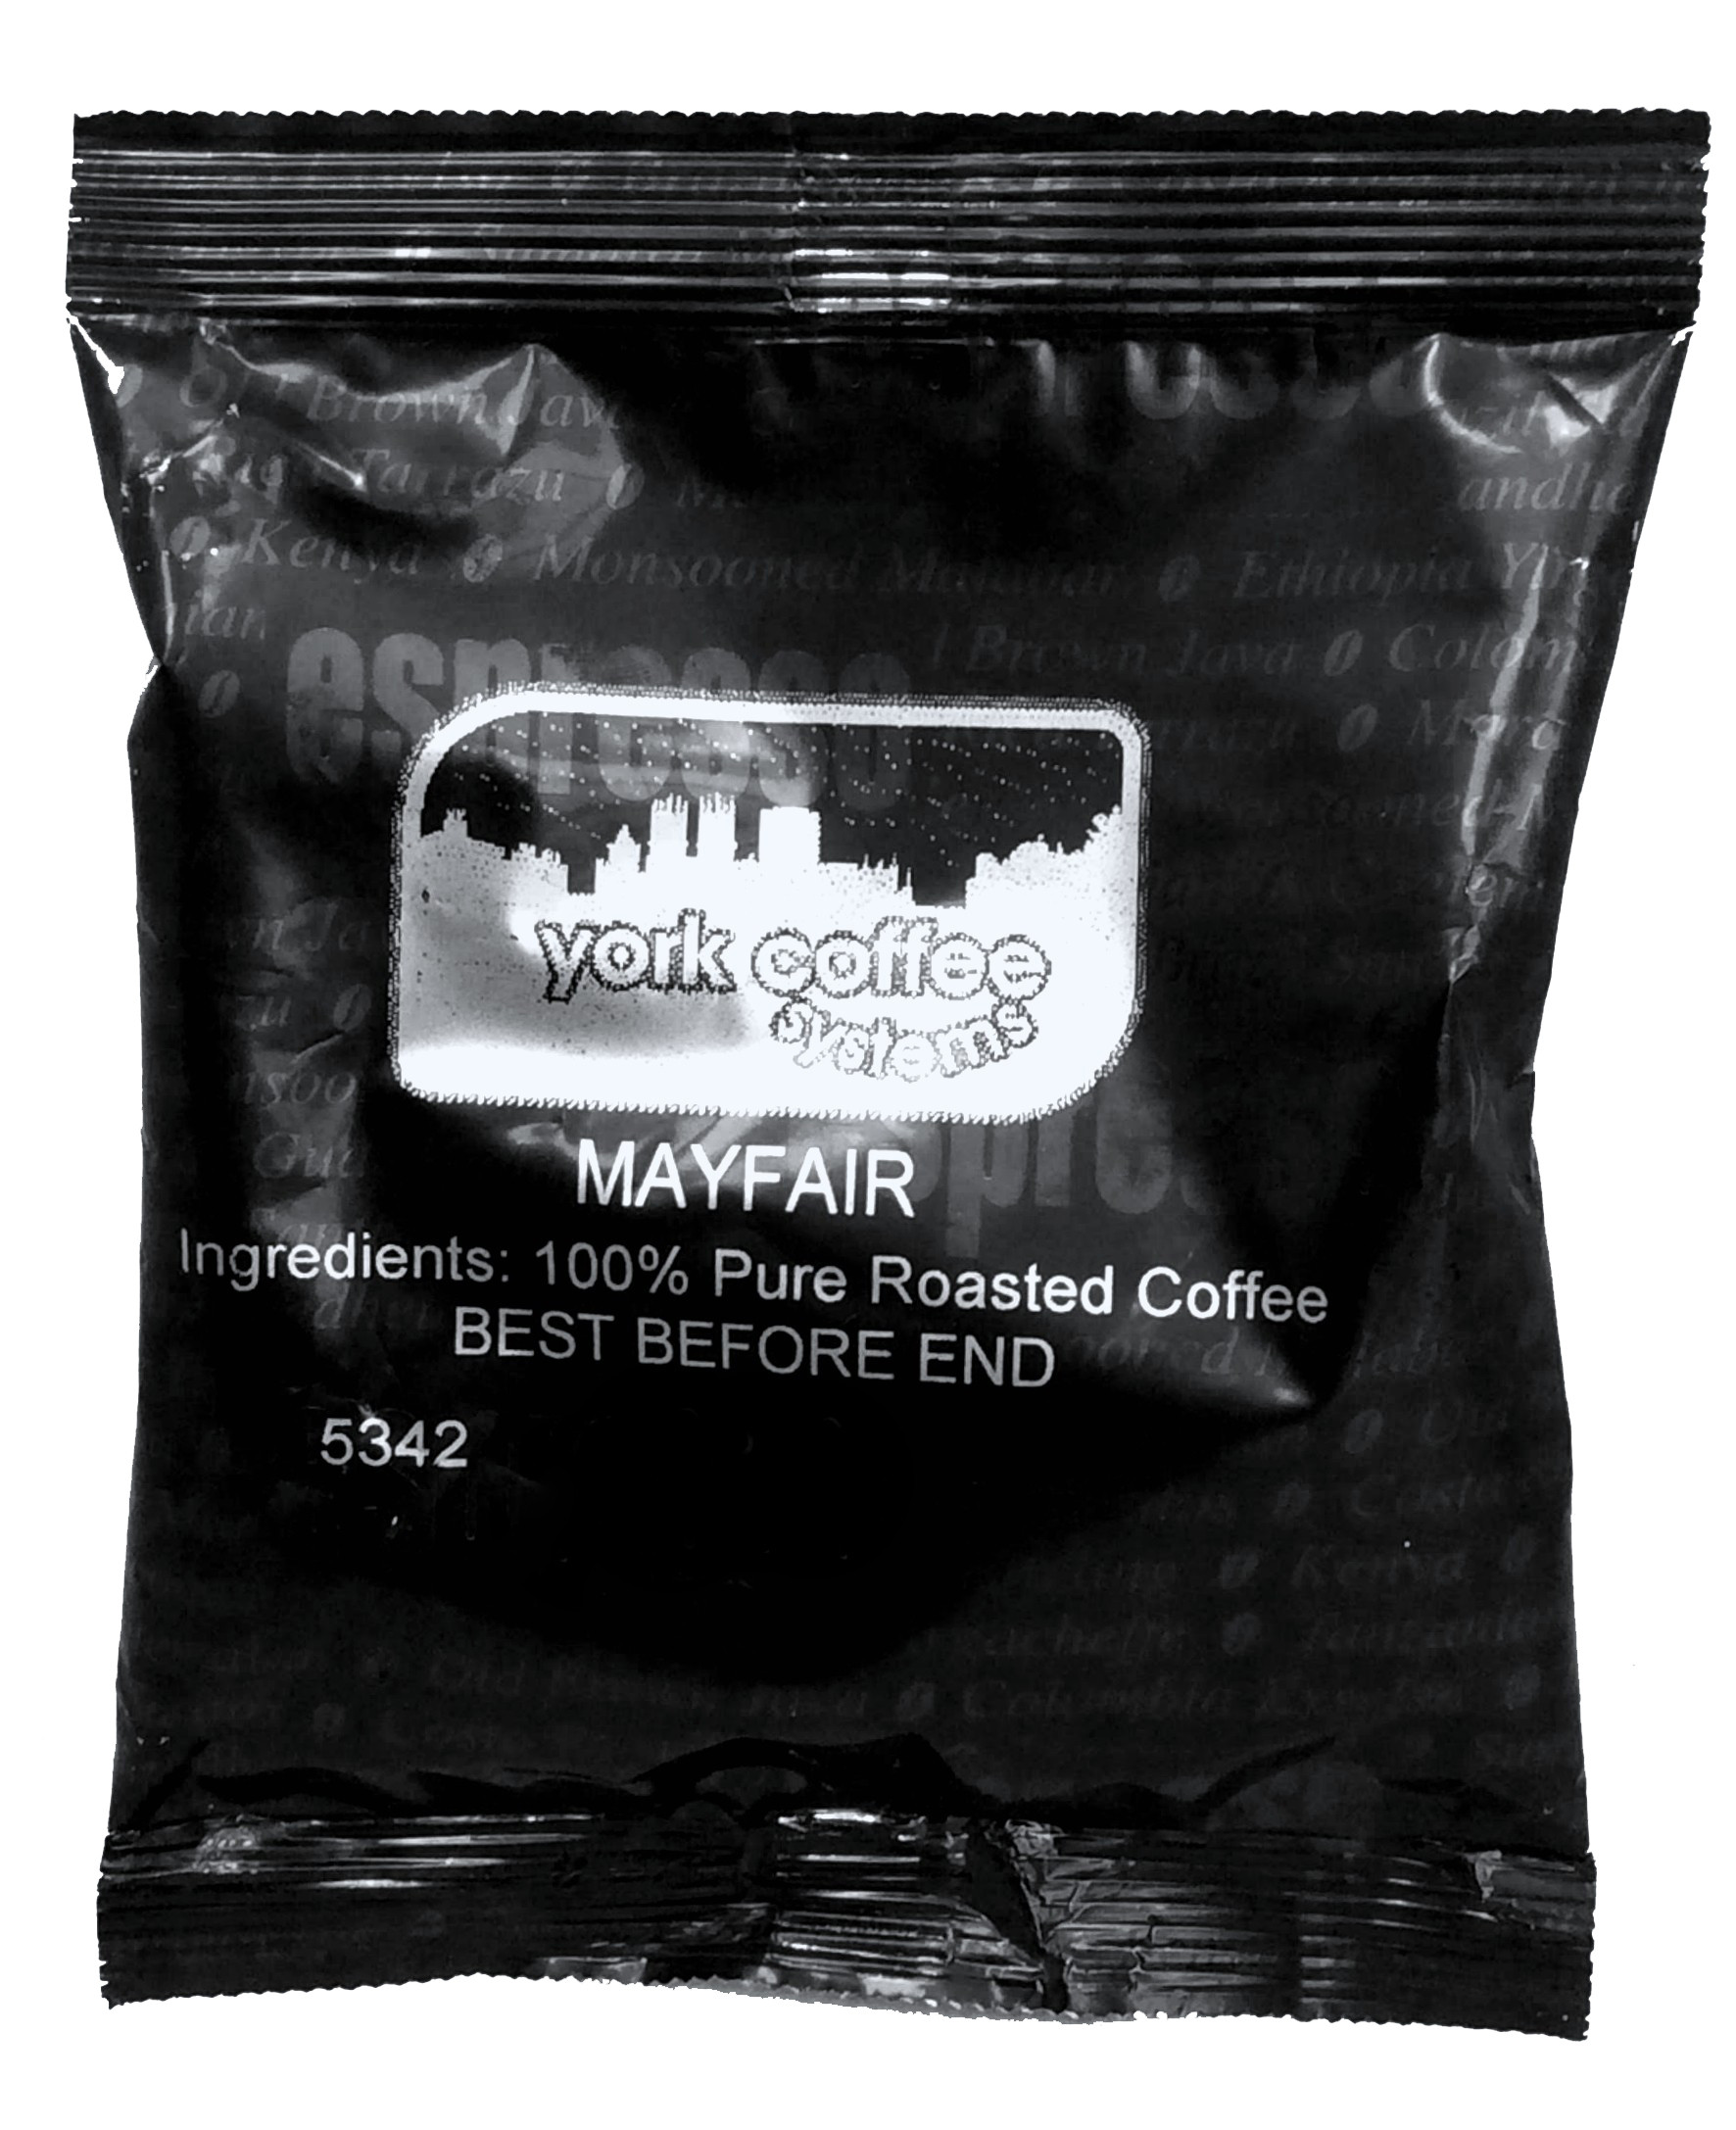 Mayfair Filter Coffee 50 x 70g